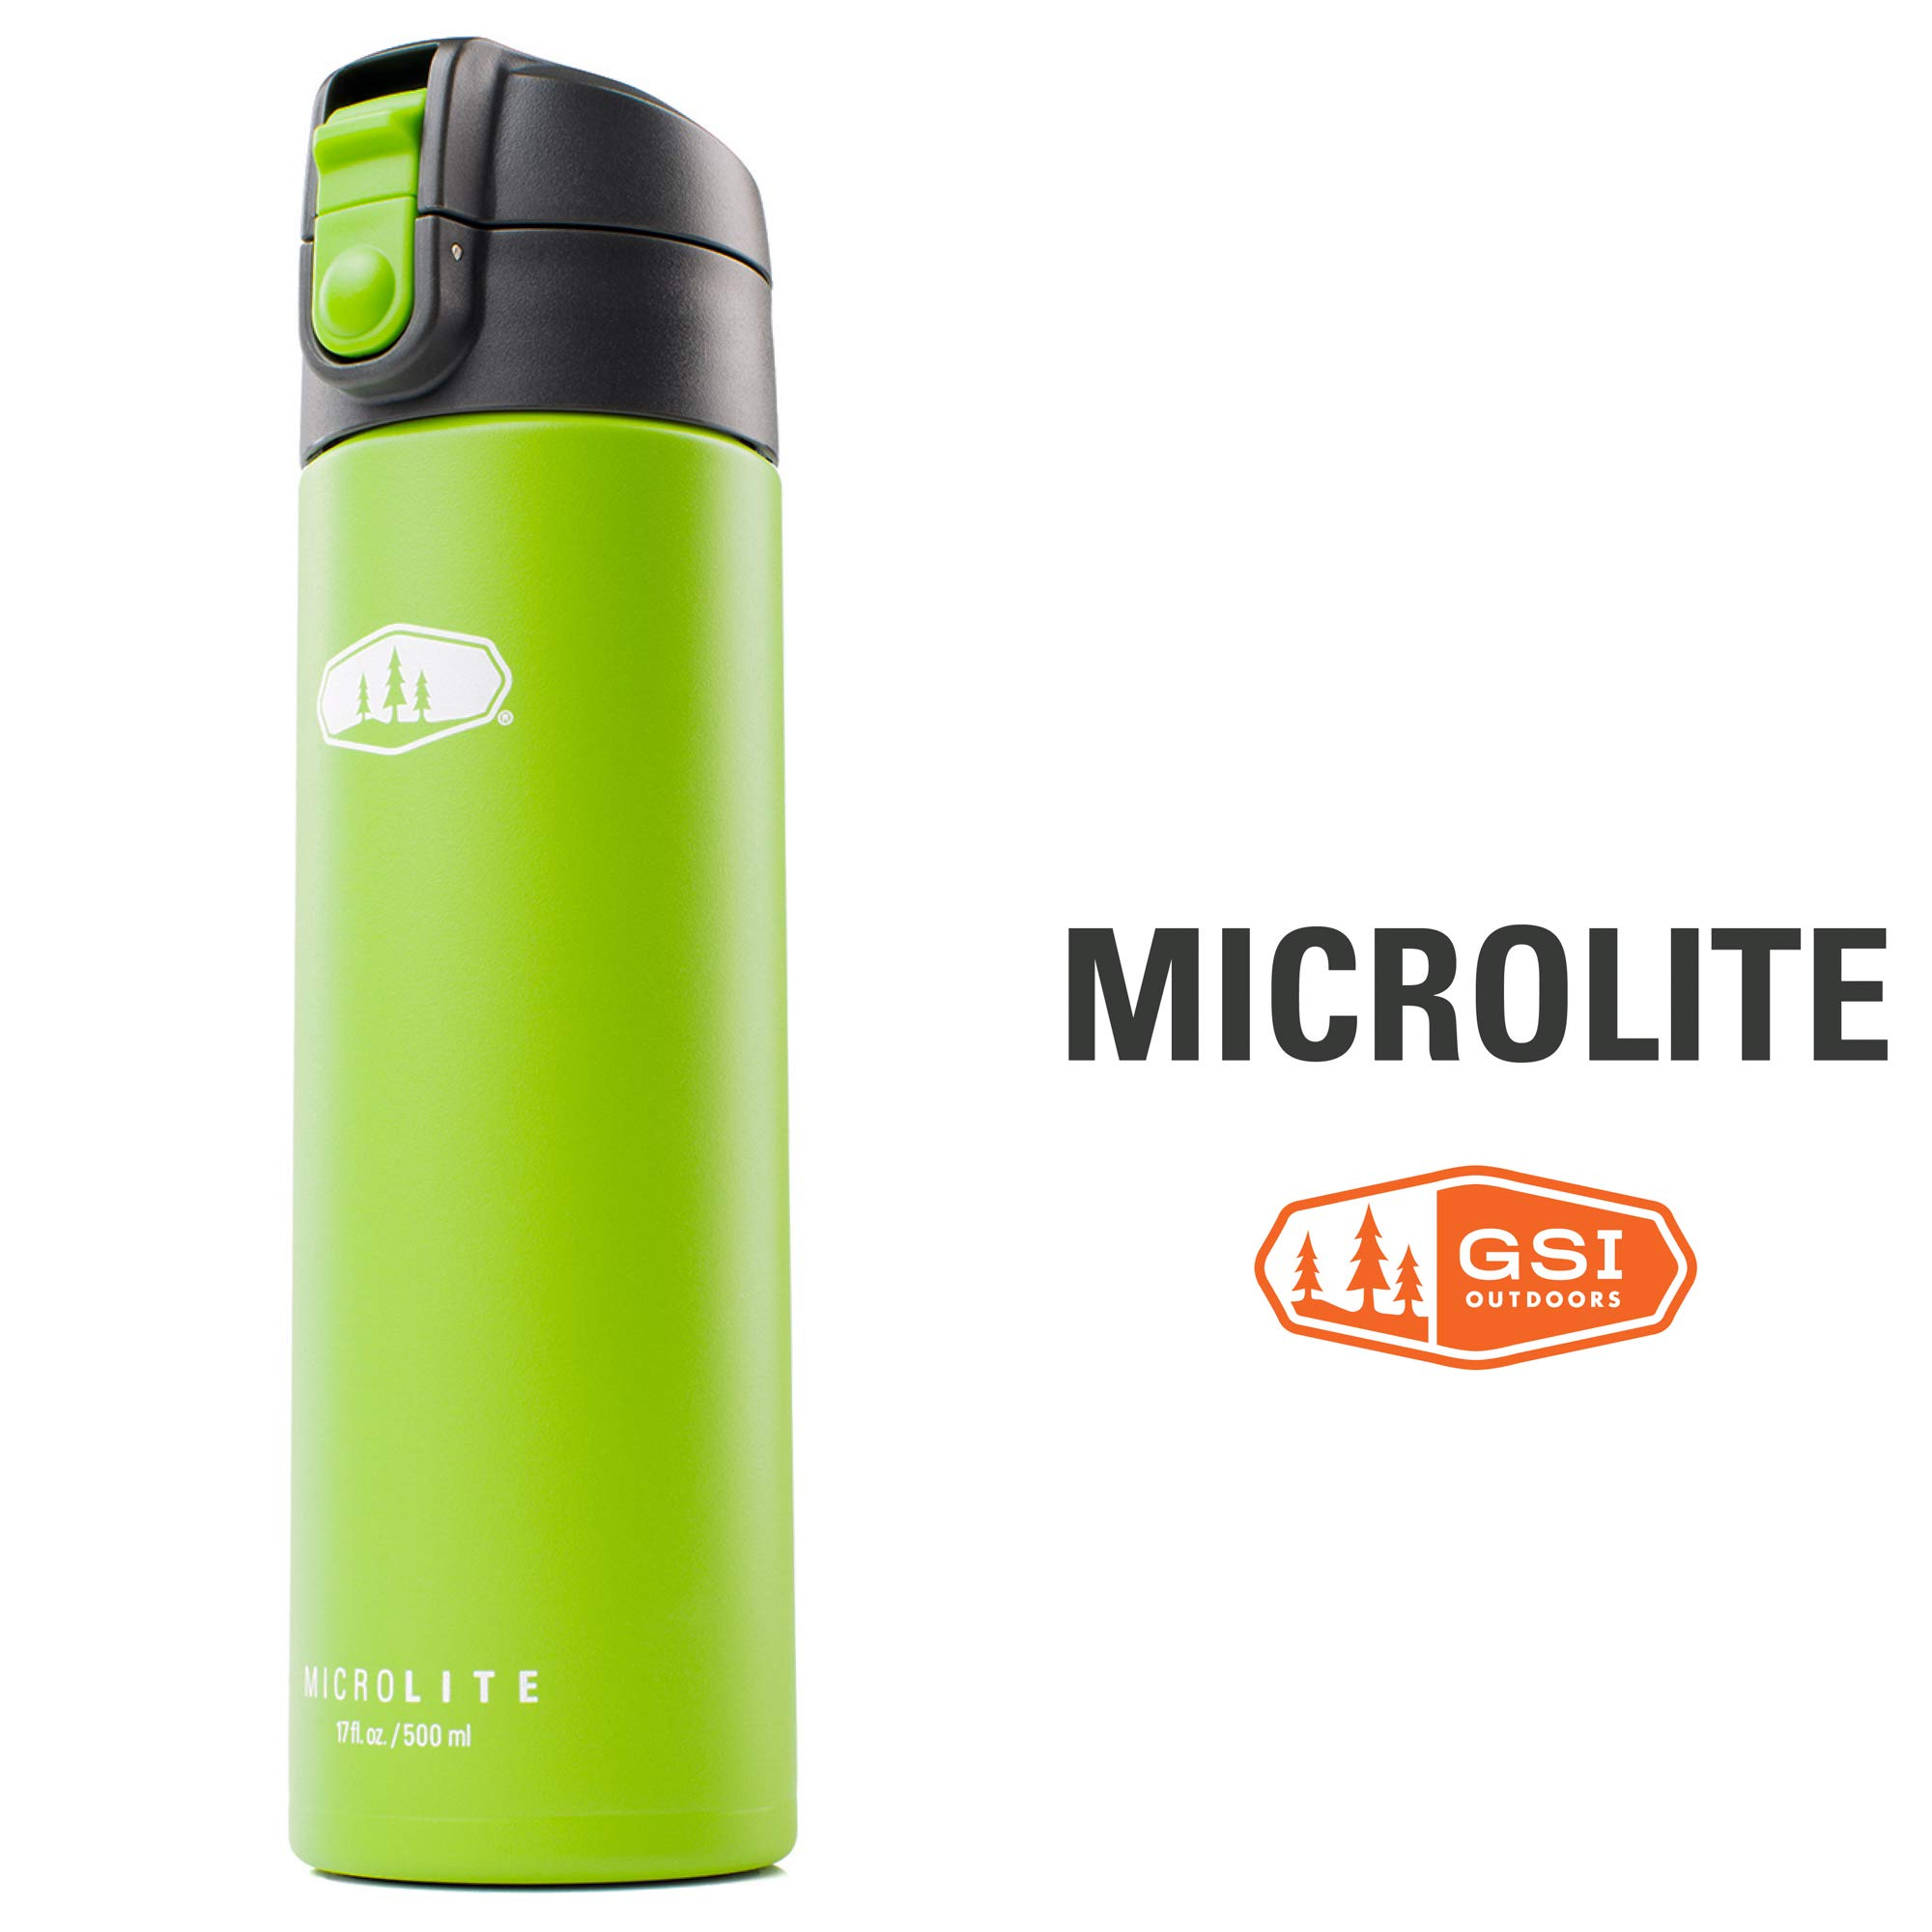 GSI Outdoors - MicroLite 500 Flip 17 fl.oz. Vacuum Insulated Stainless Steel Water Bottle